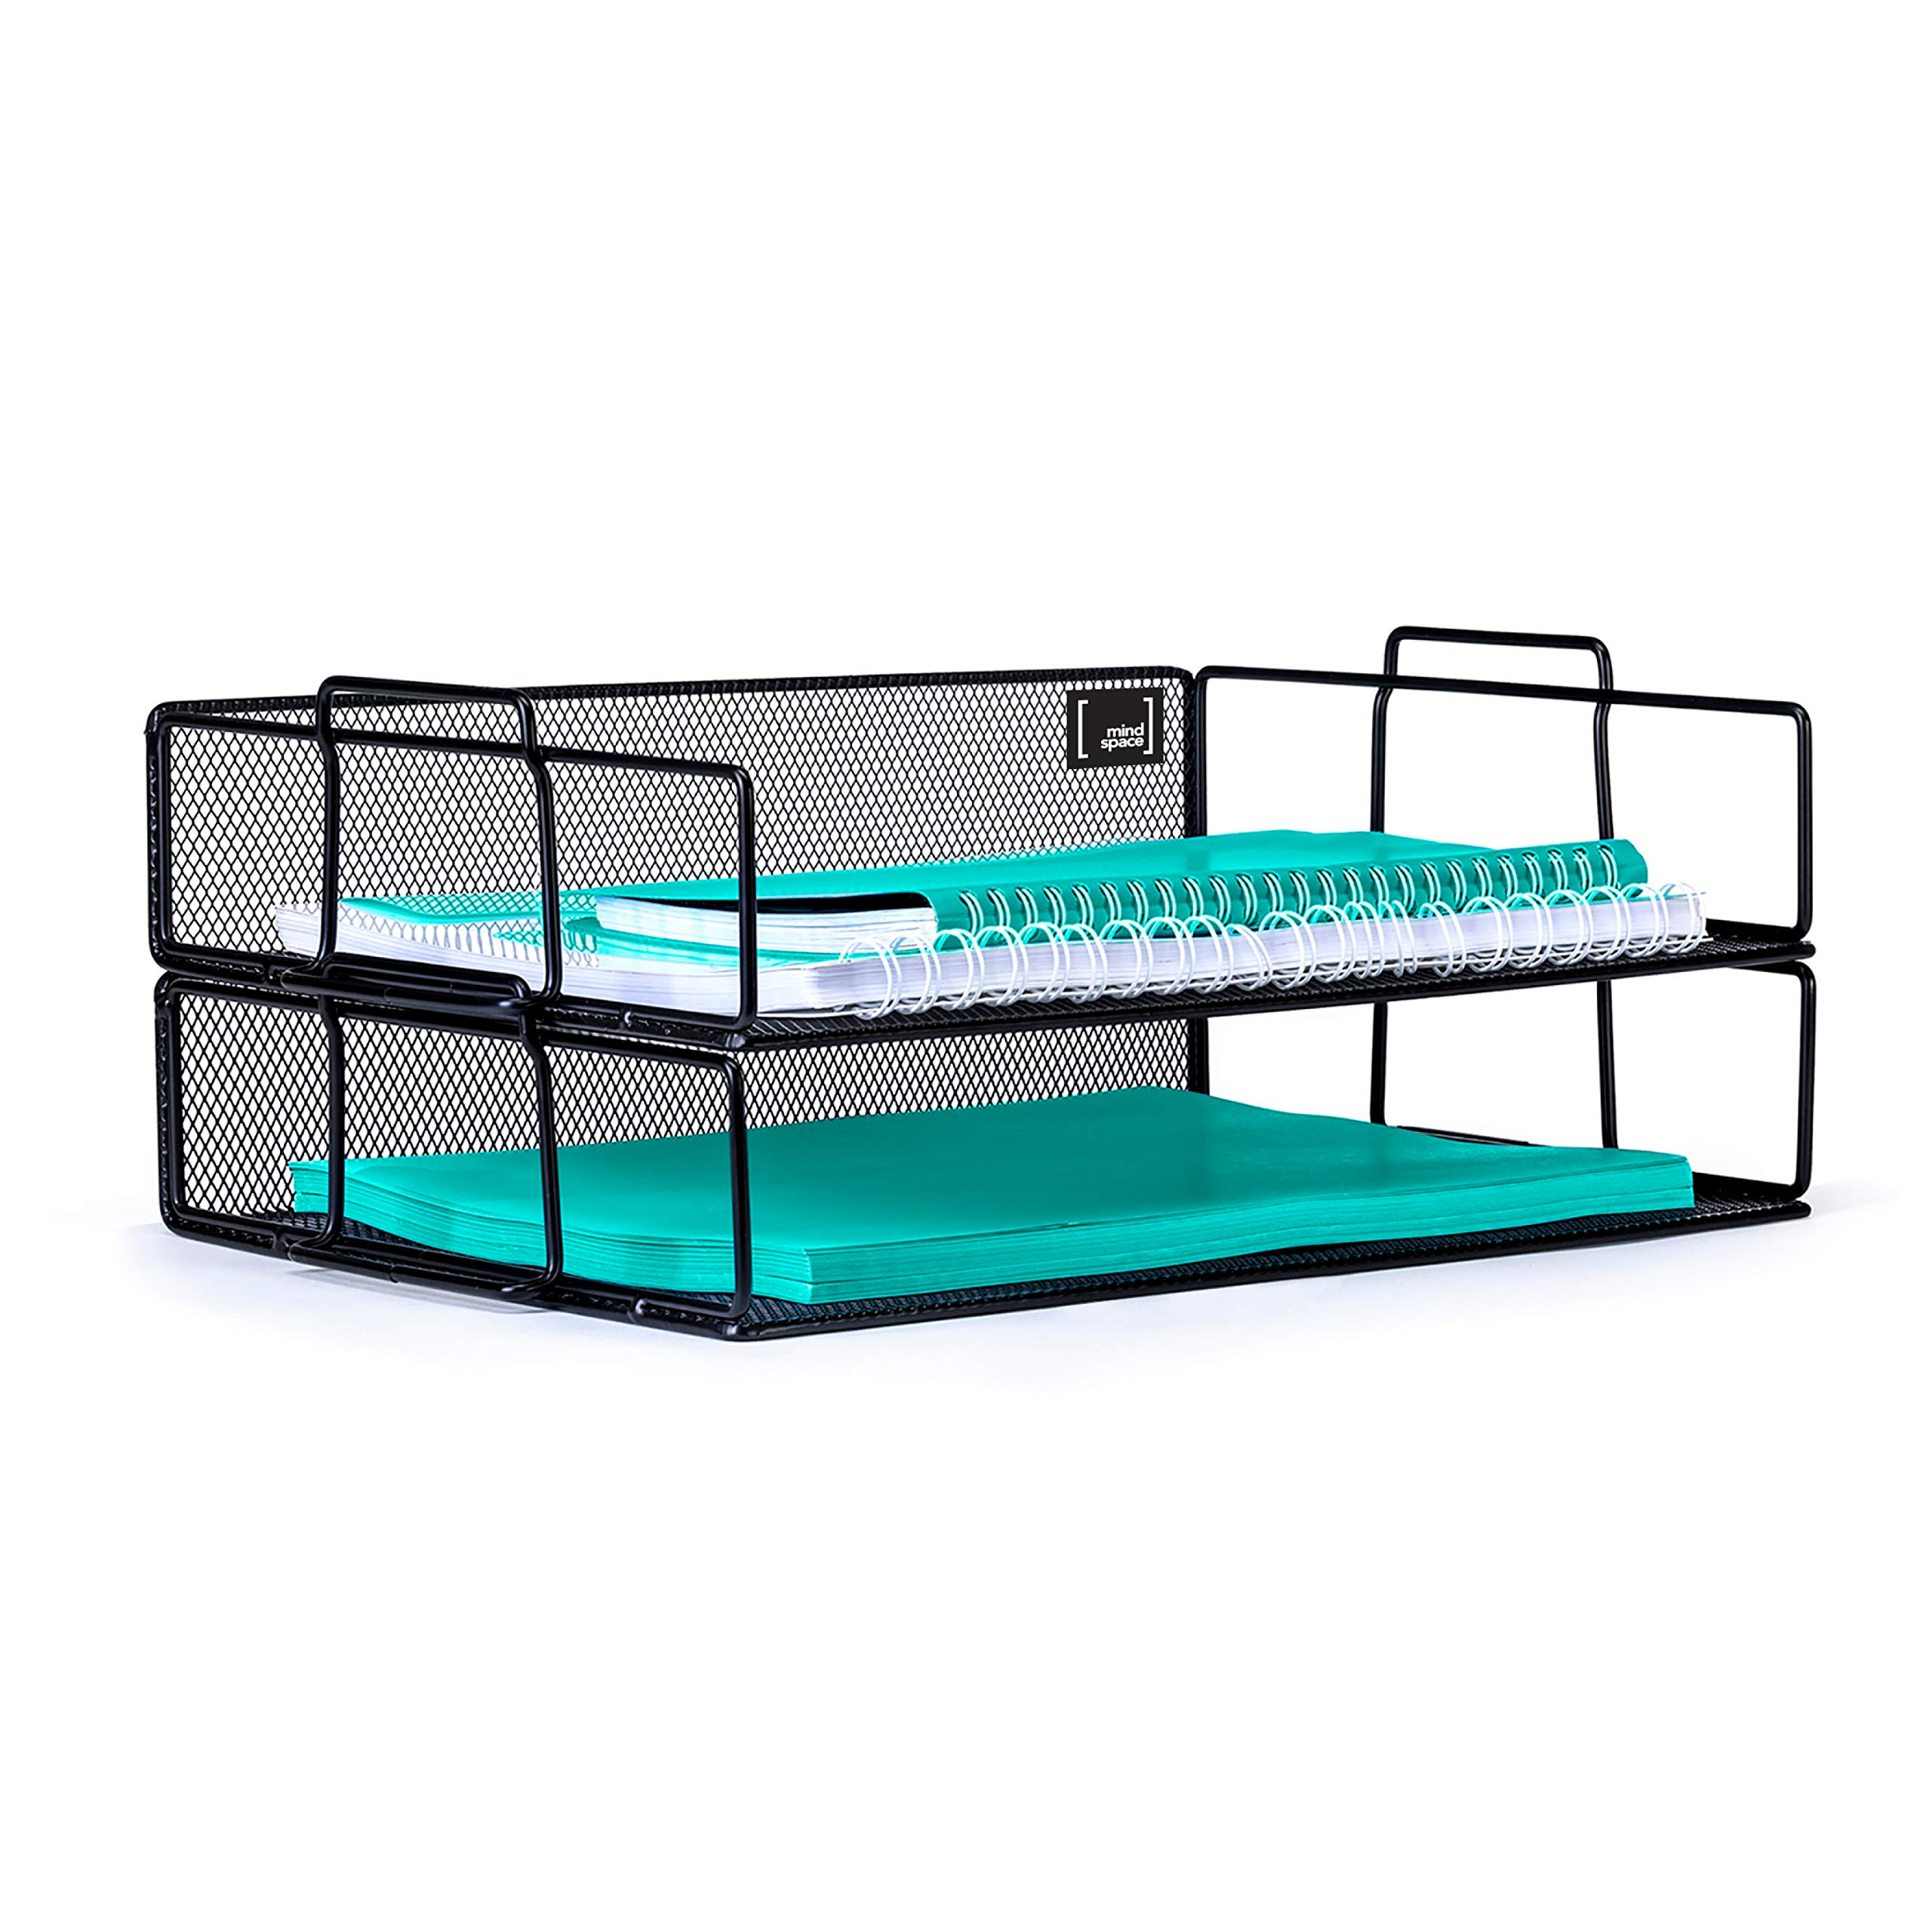 Mindspace 2 Tier Stackable Letter Tray Desk Organizer | Stackable Paper Tray Organizer | The Mesh Collection, Black by Mindspace